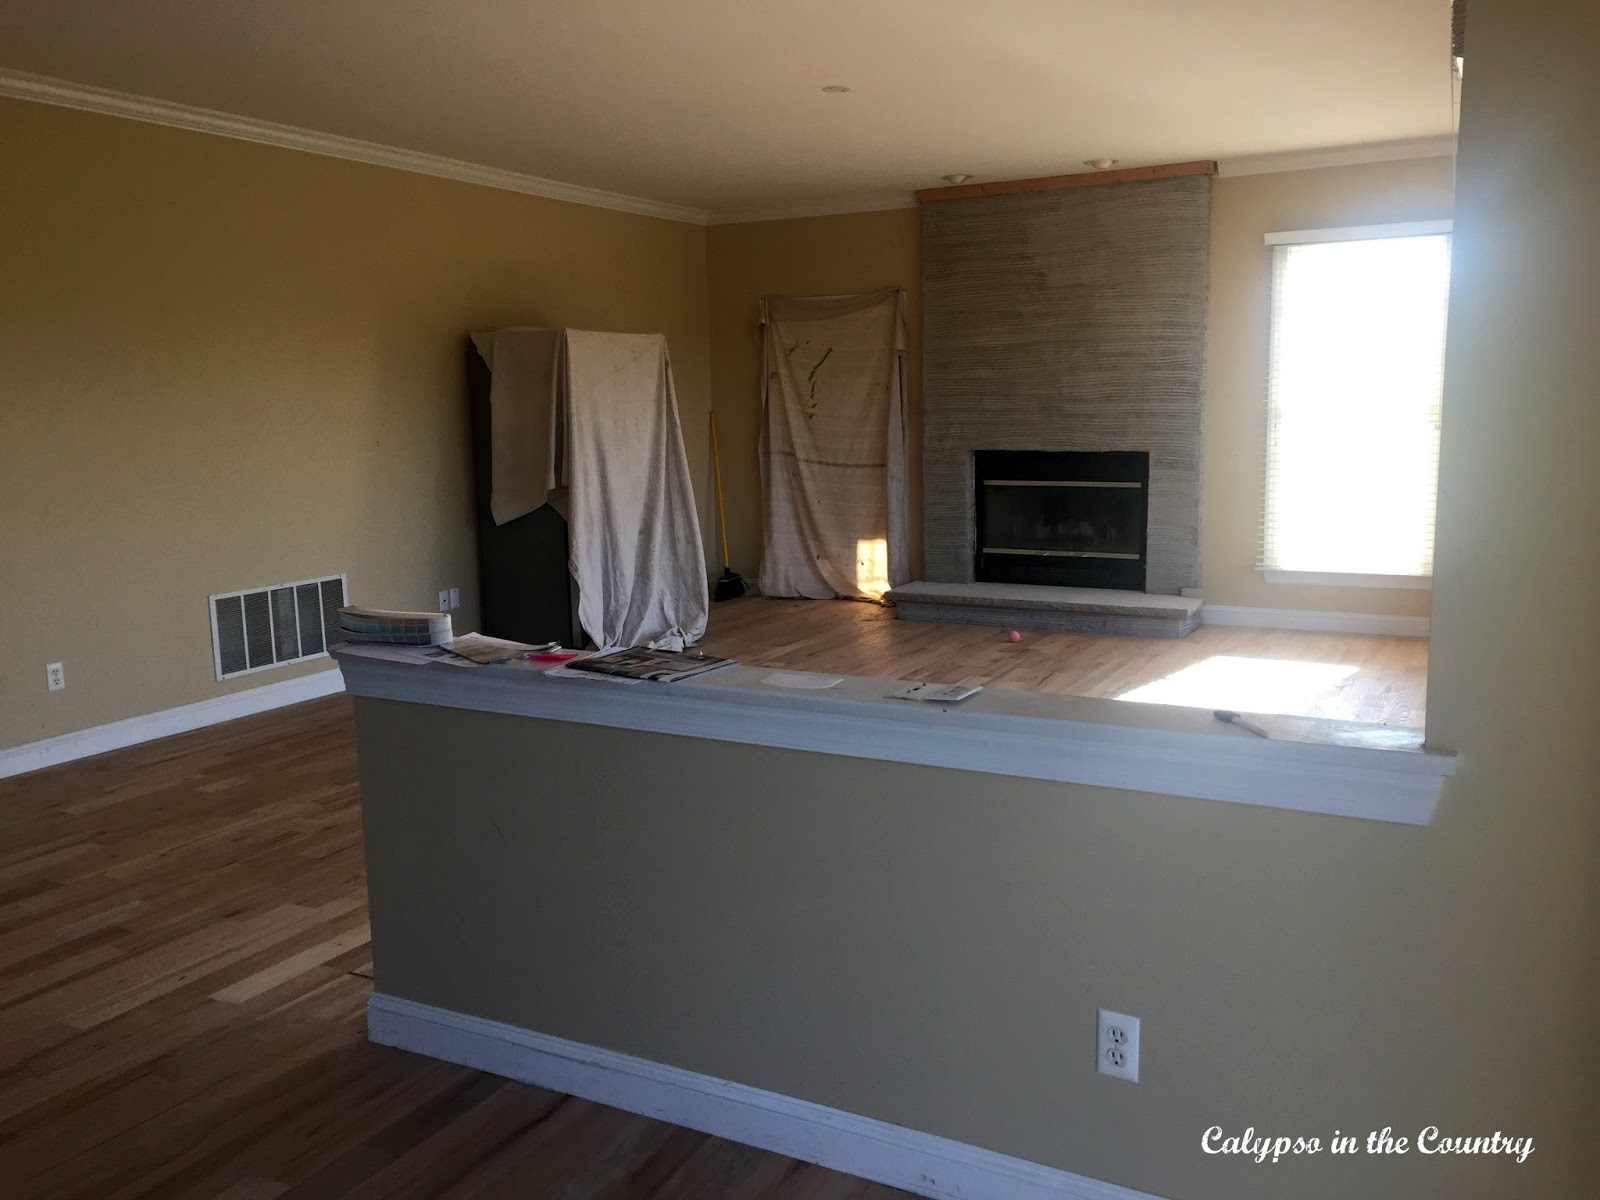 Renovation progress the half wall calypso in the country - Half wall kitchen designs ...